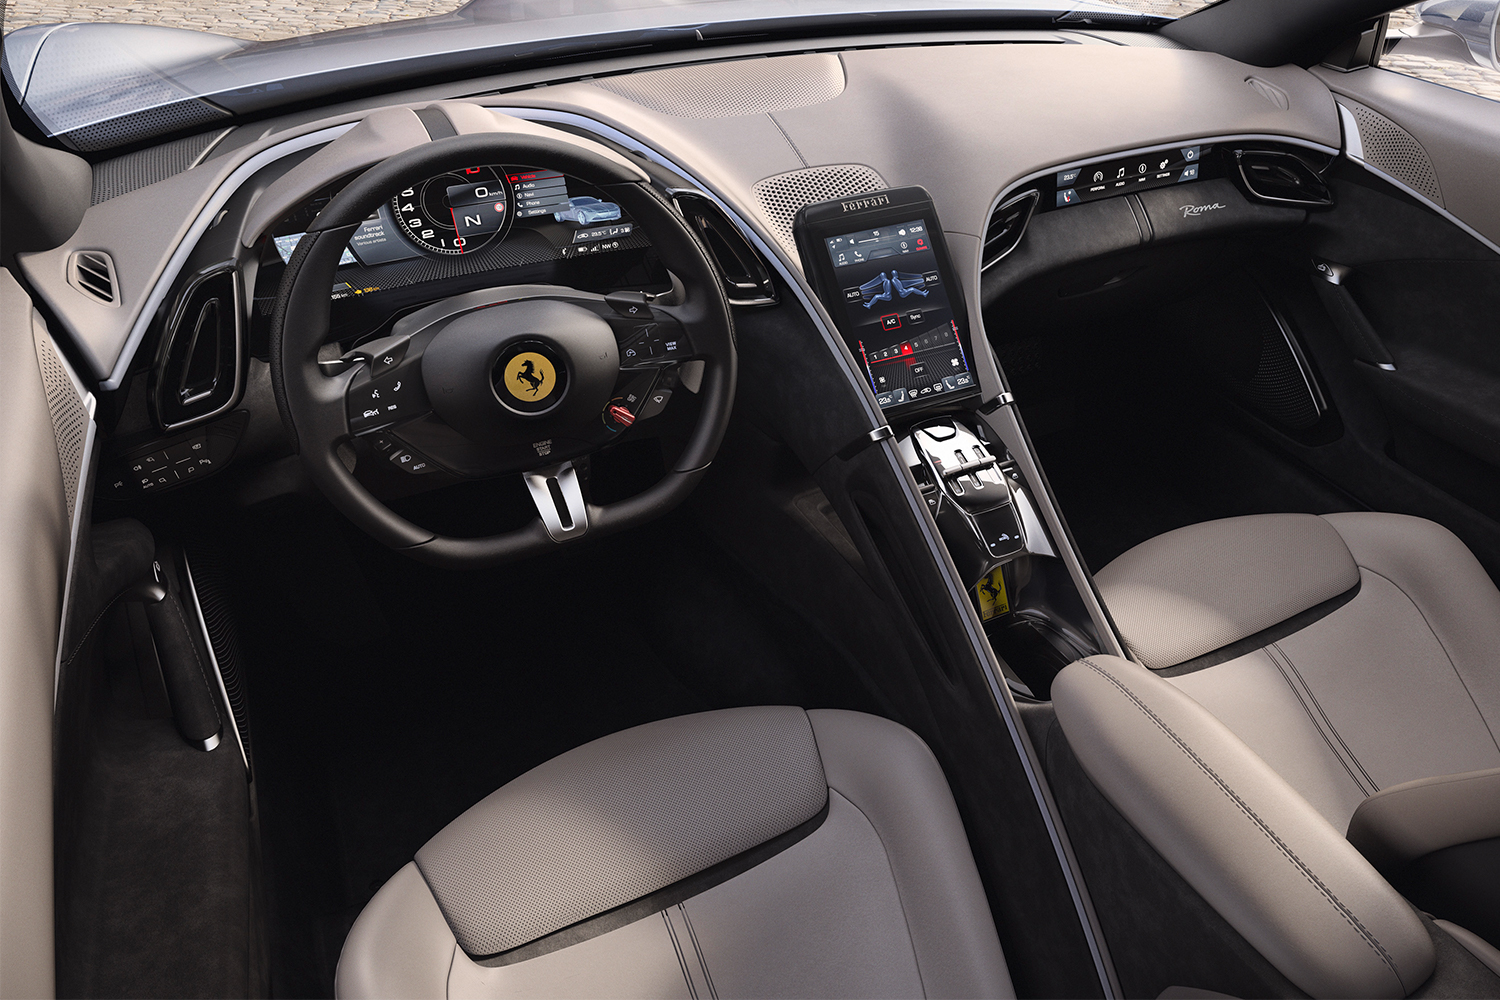 Ferrari Roma coupe sports car interior